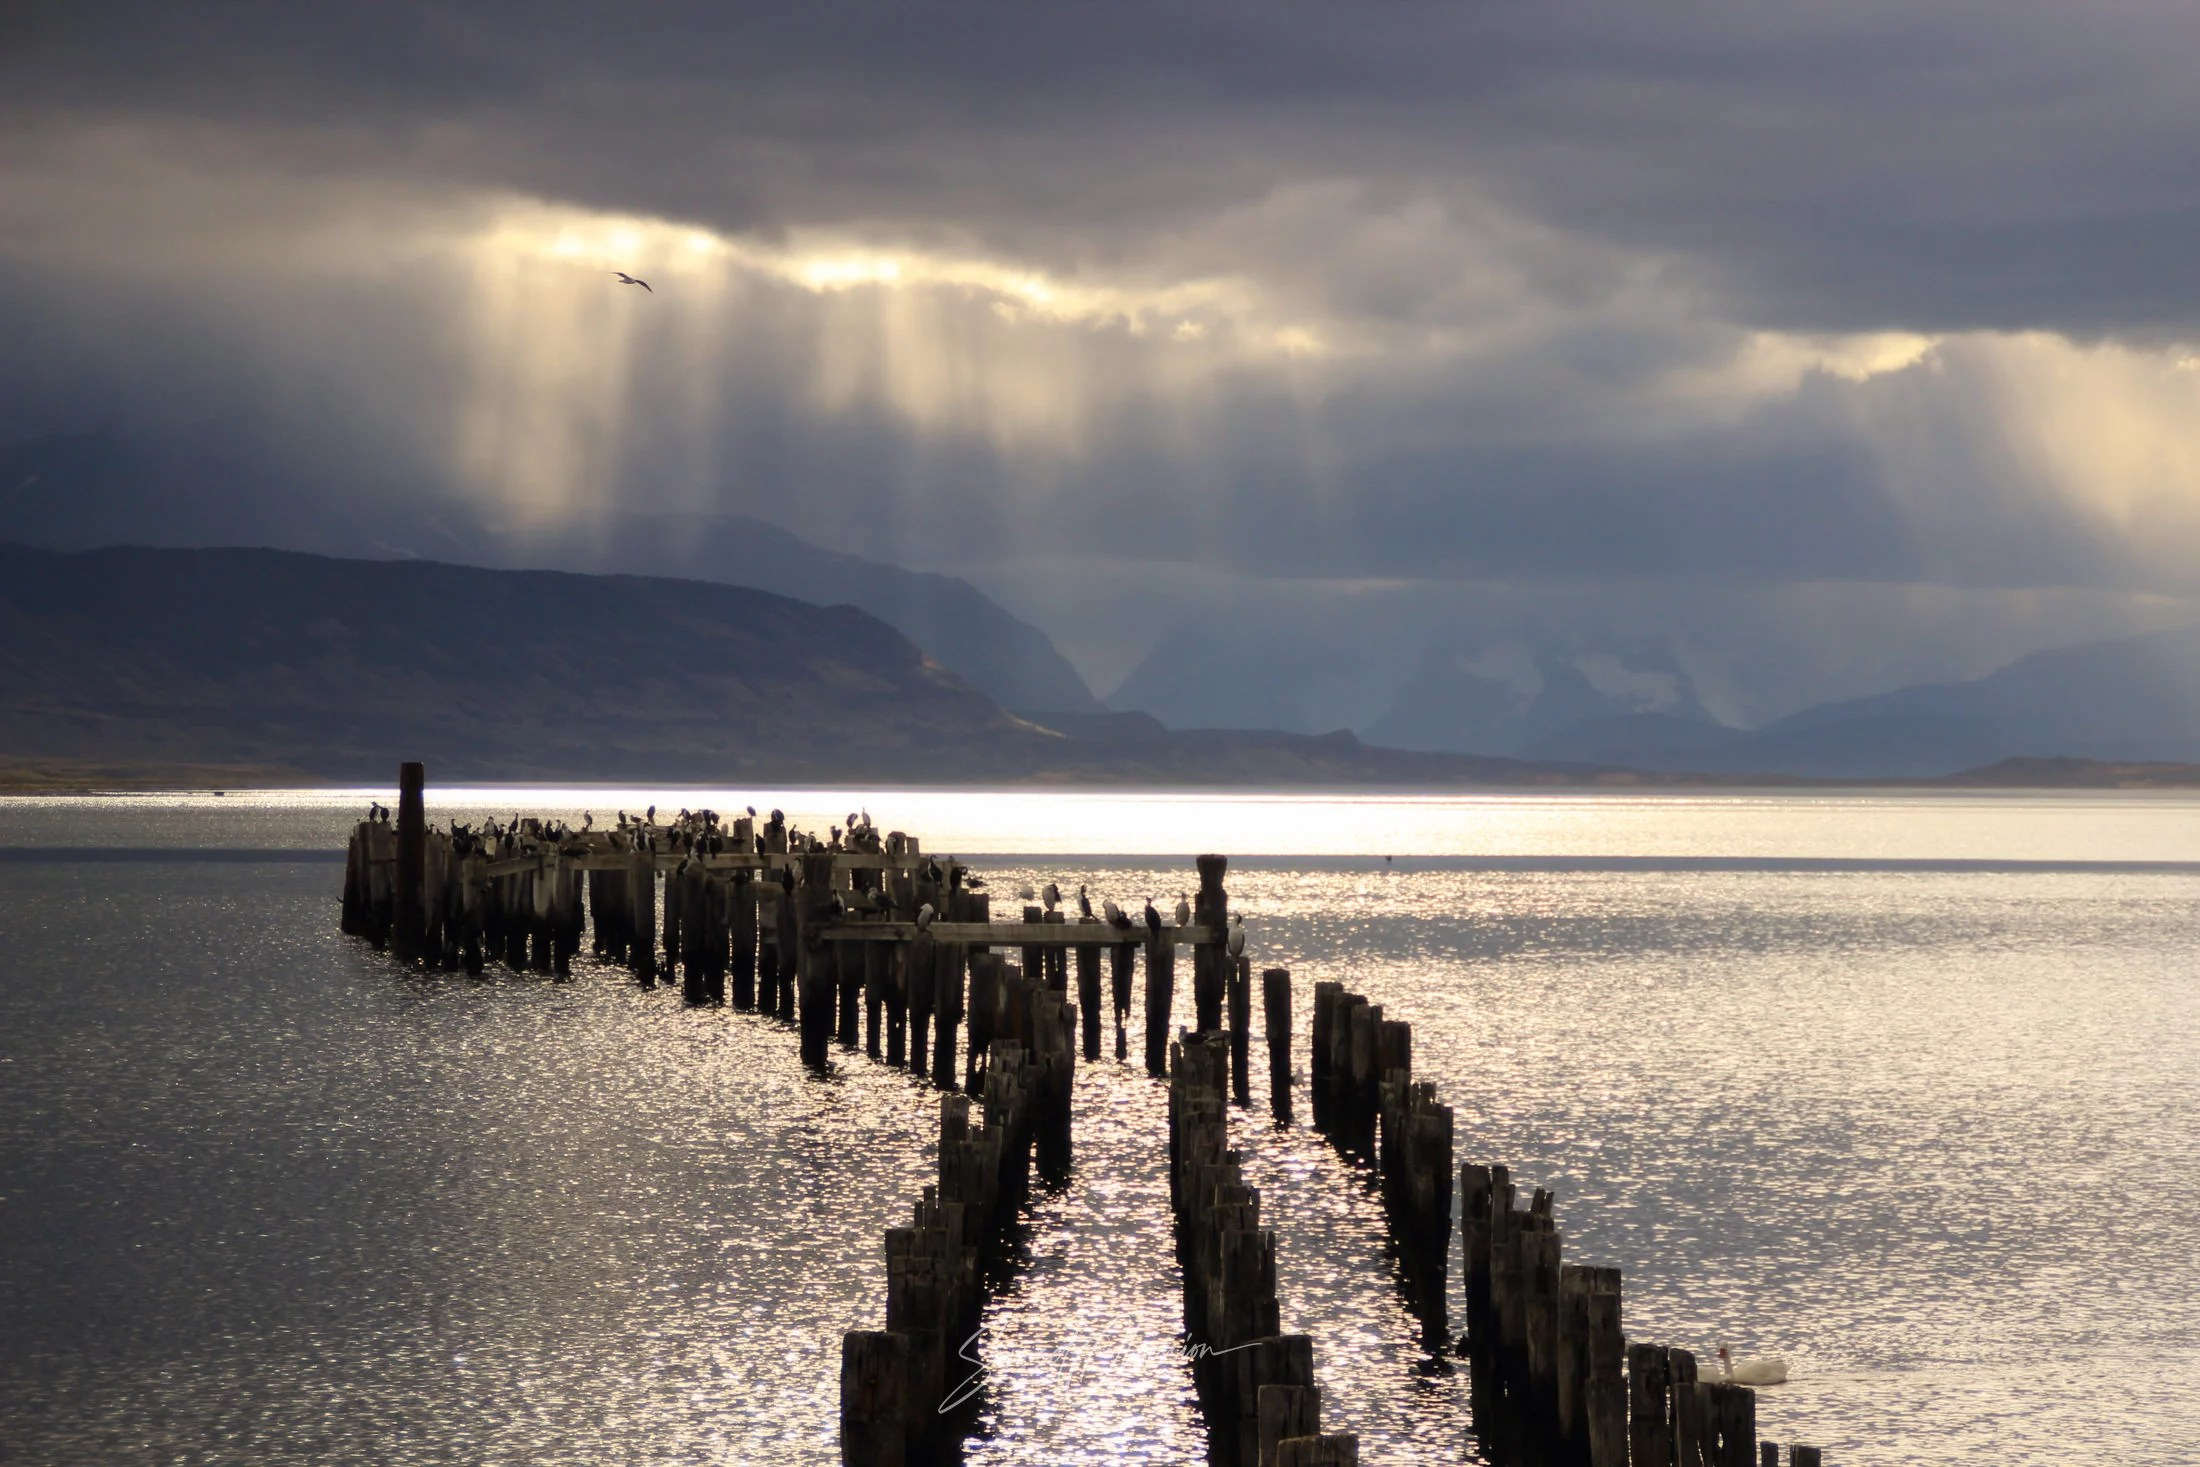 An Old pier in Puerto Natales at sunset